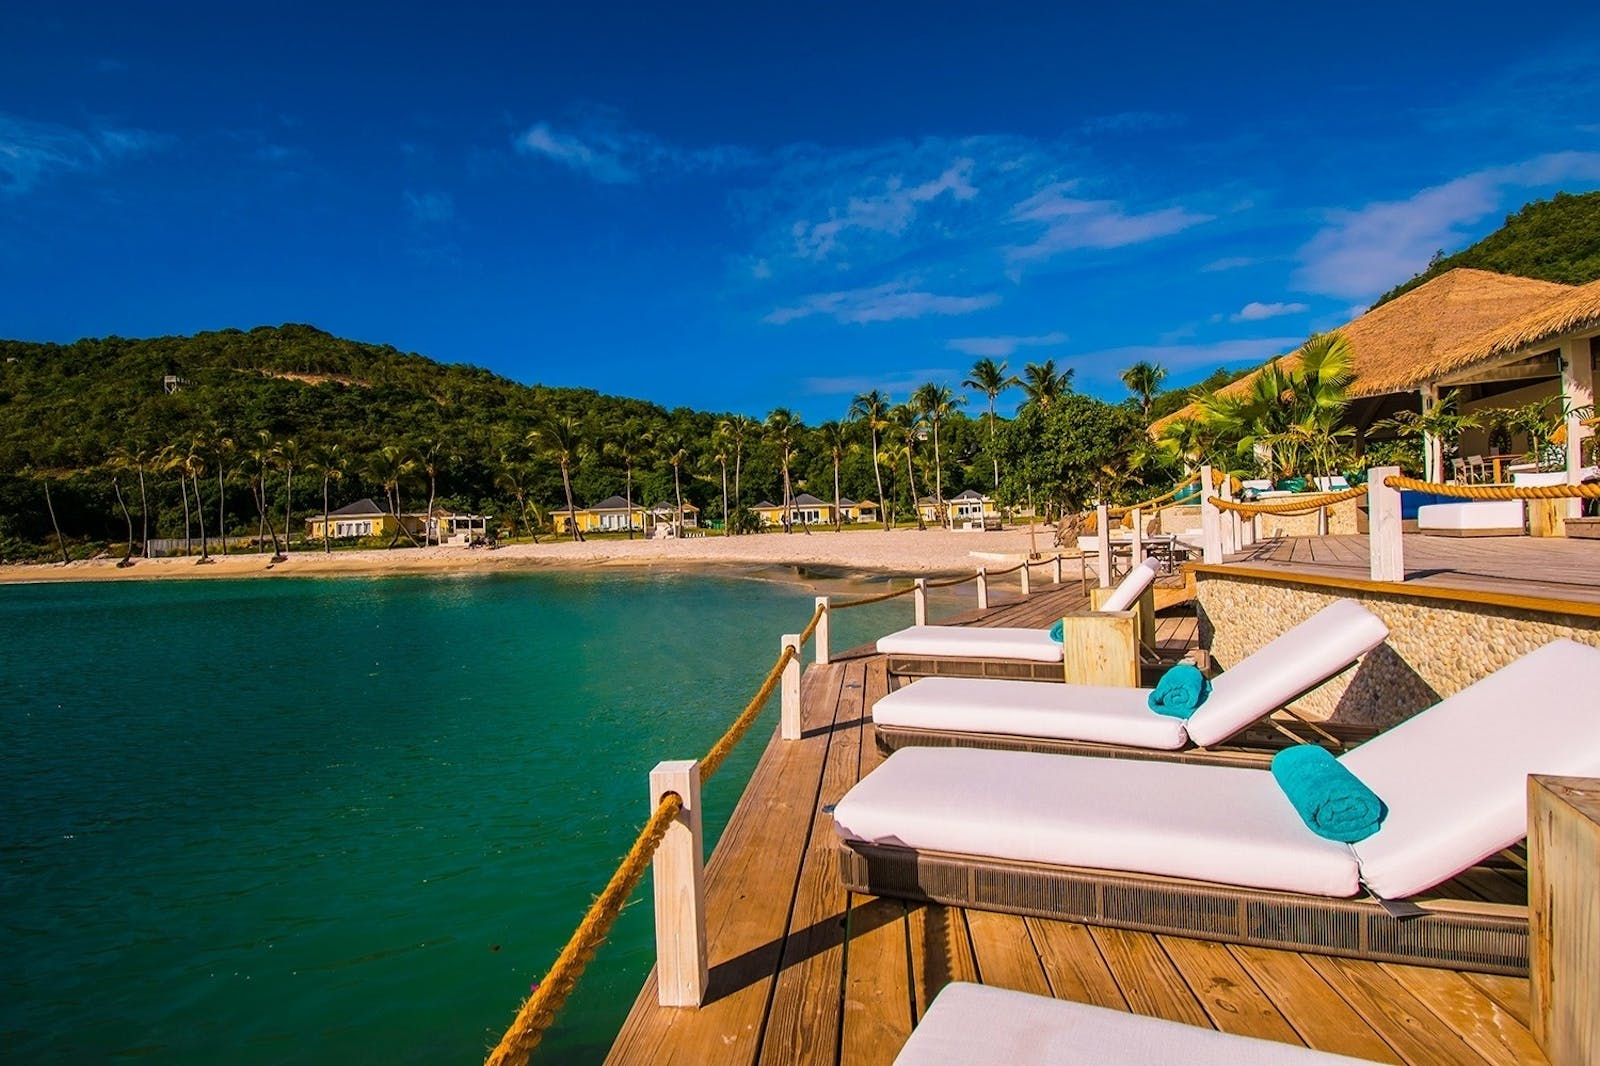 Beach Views at The Liming, St Vincent & The Grenadines, Caribbean